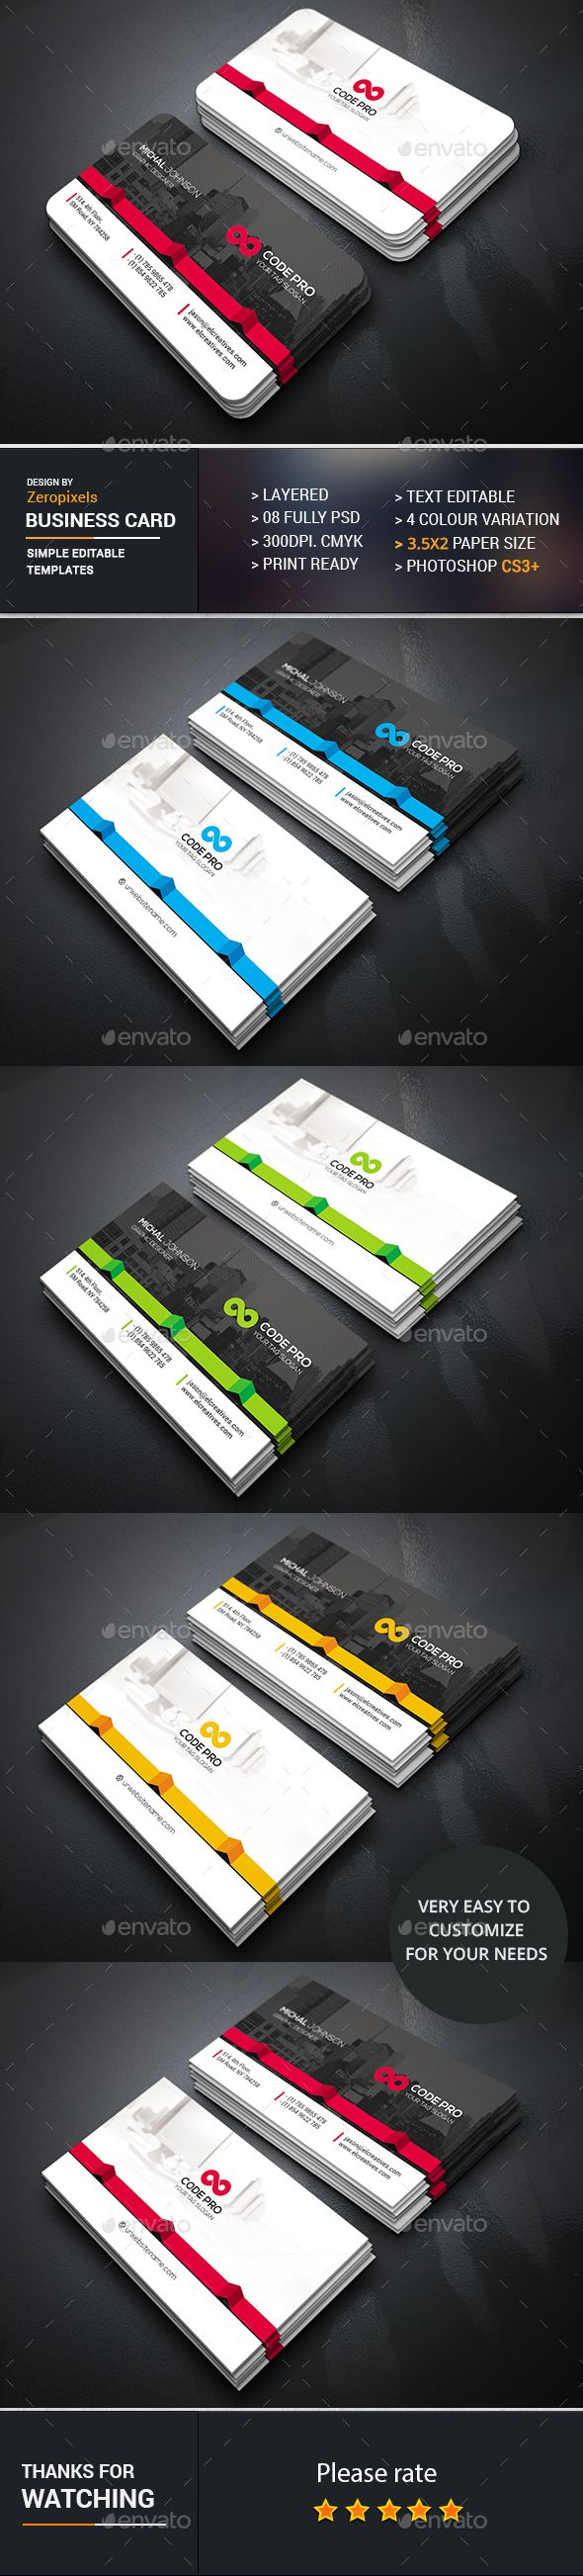 Soft business card template psd download here httpsgraphicriver soft business card template psd download here httpsgraphicriver reheart Image collections